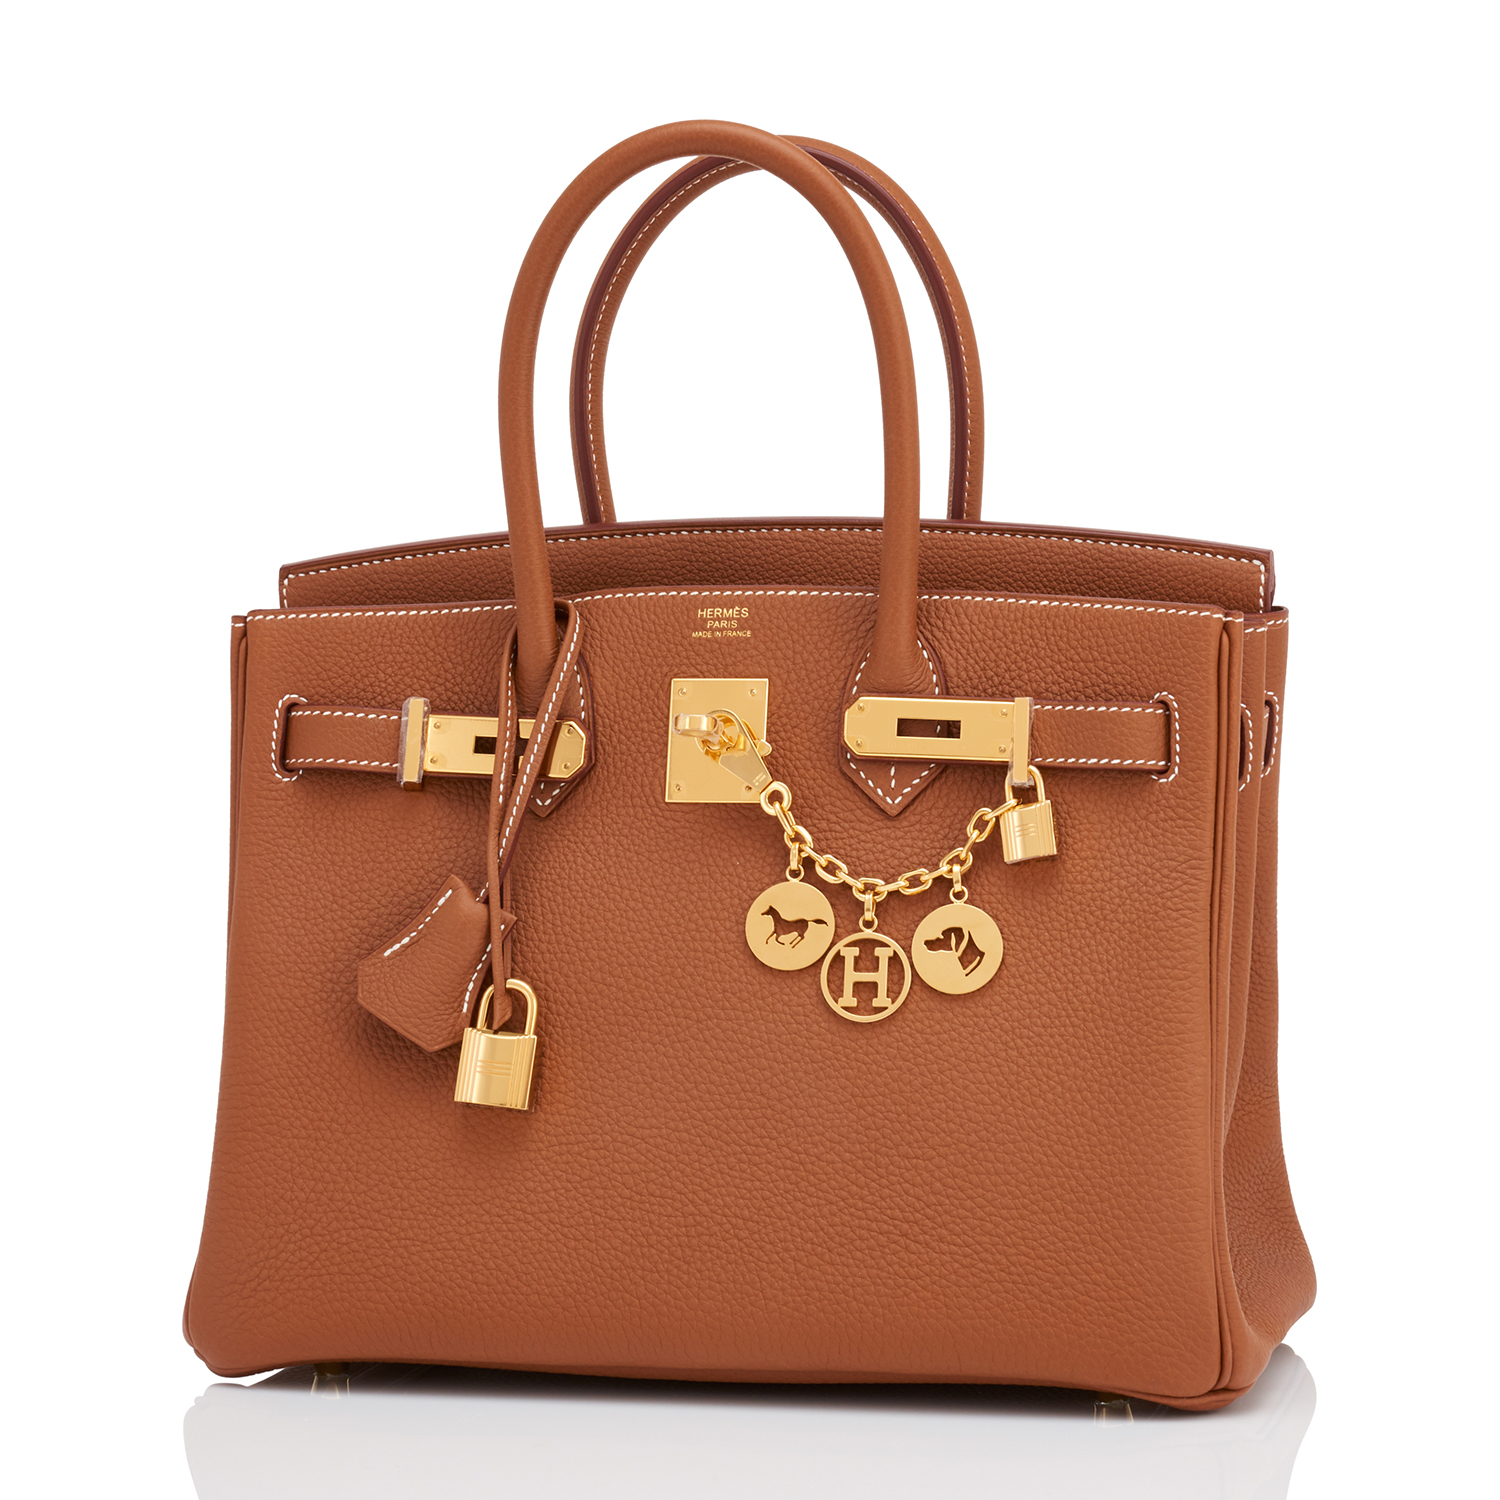 30cm Hermes Birkin Bag 30cm Gold Togo Gold Hardware World 39s Best